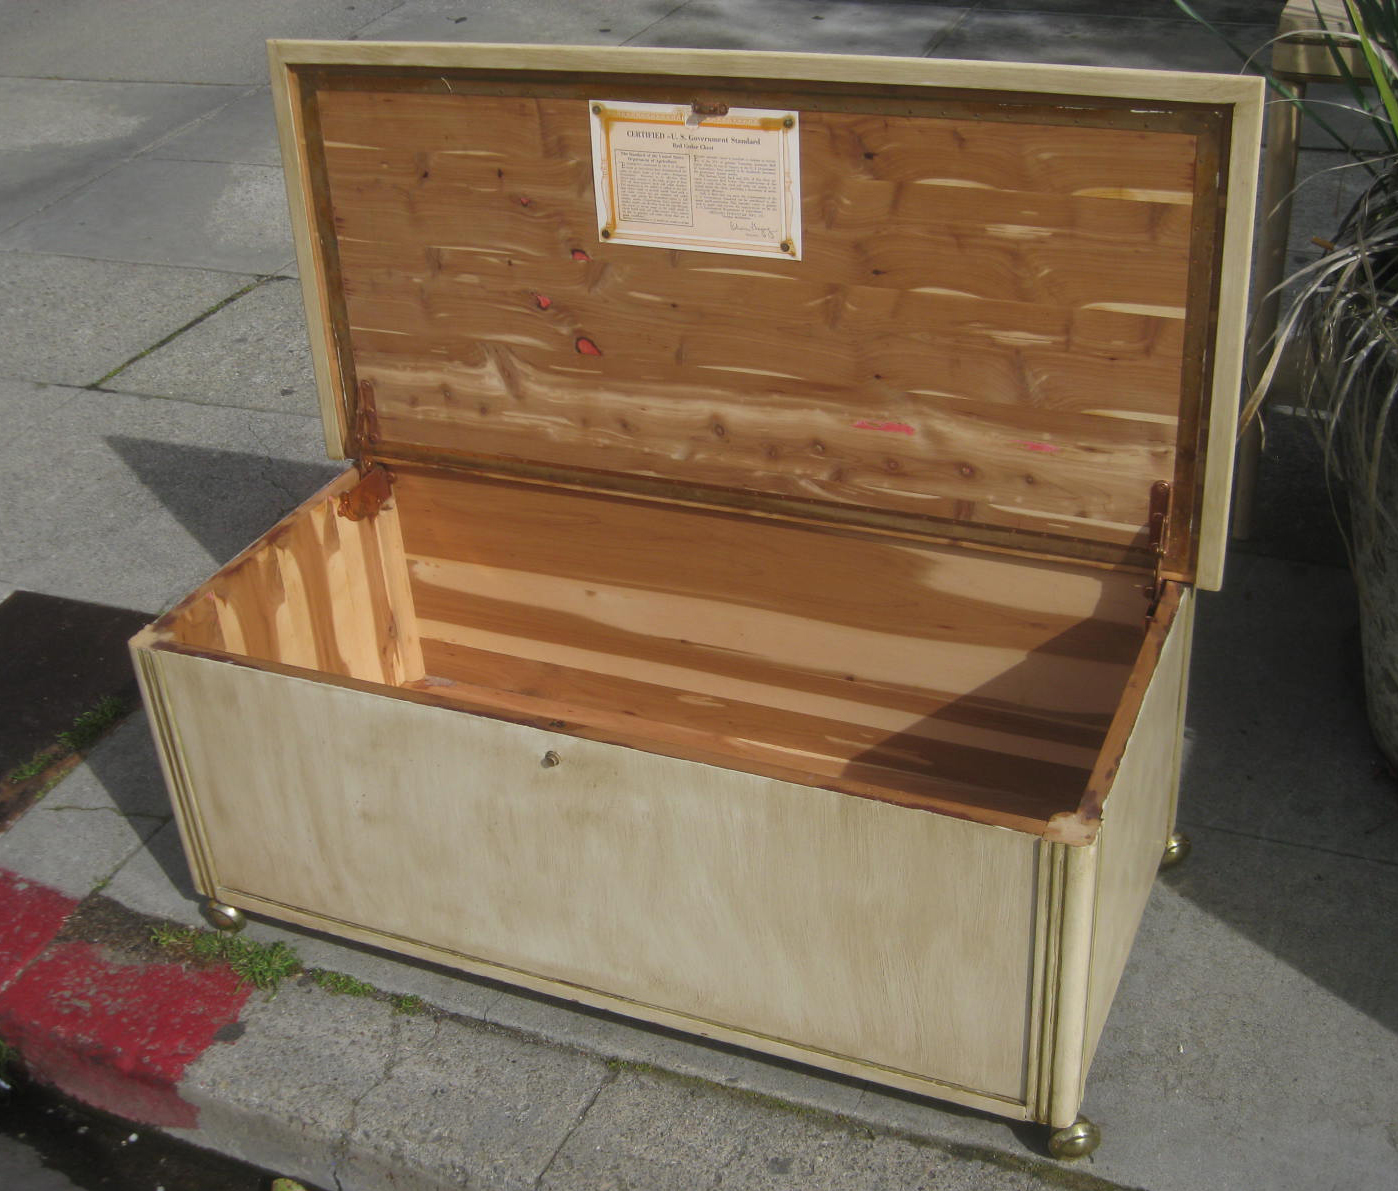 Ideal UHURU FURNITURE & COLLECTIBLES: SOLD - White Washed Cedar Chest - $90 YD09